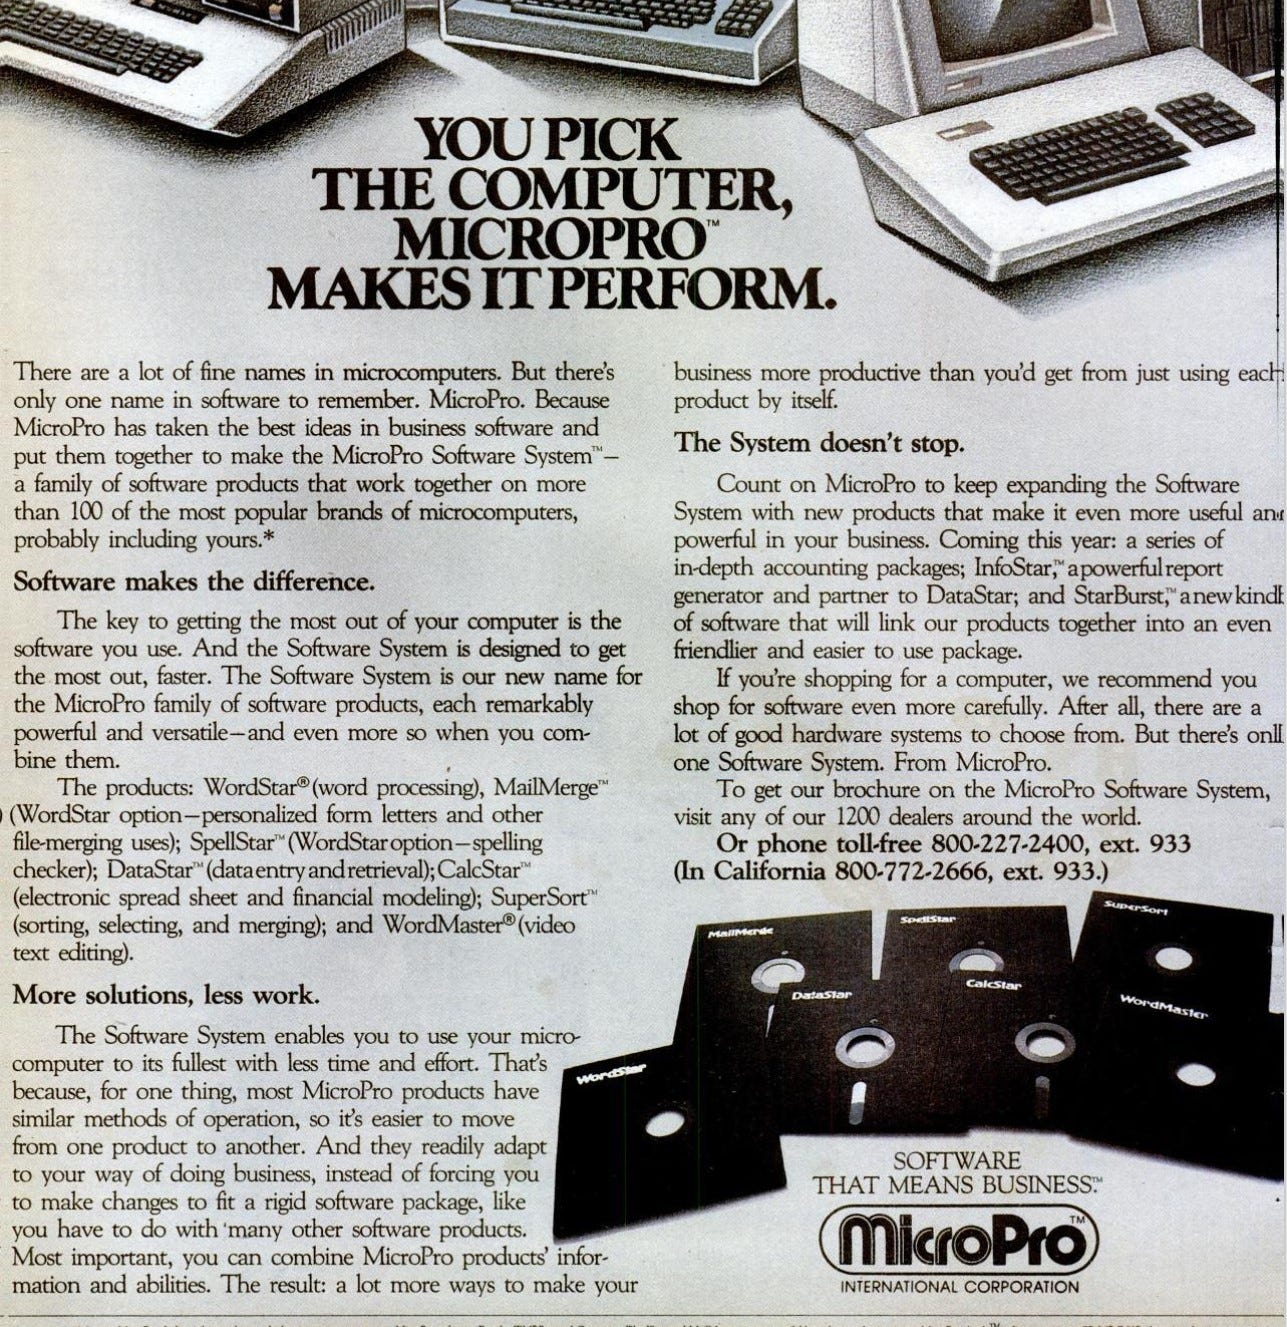 Advertisement for Micropro showing spelling sorting etc all as separate products.